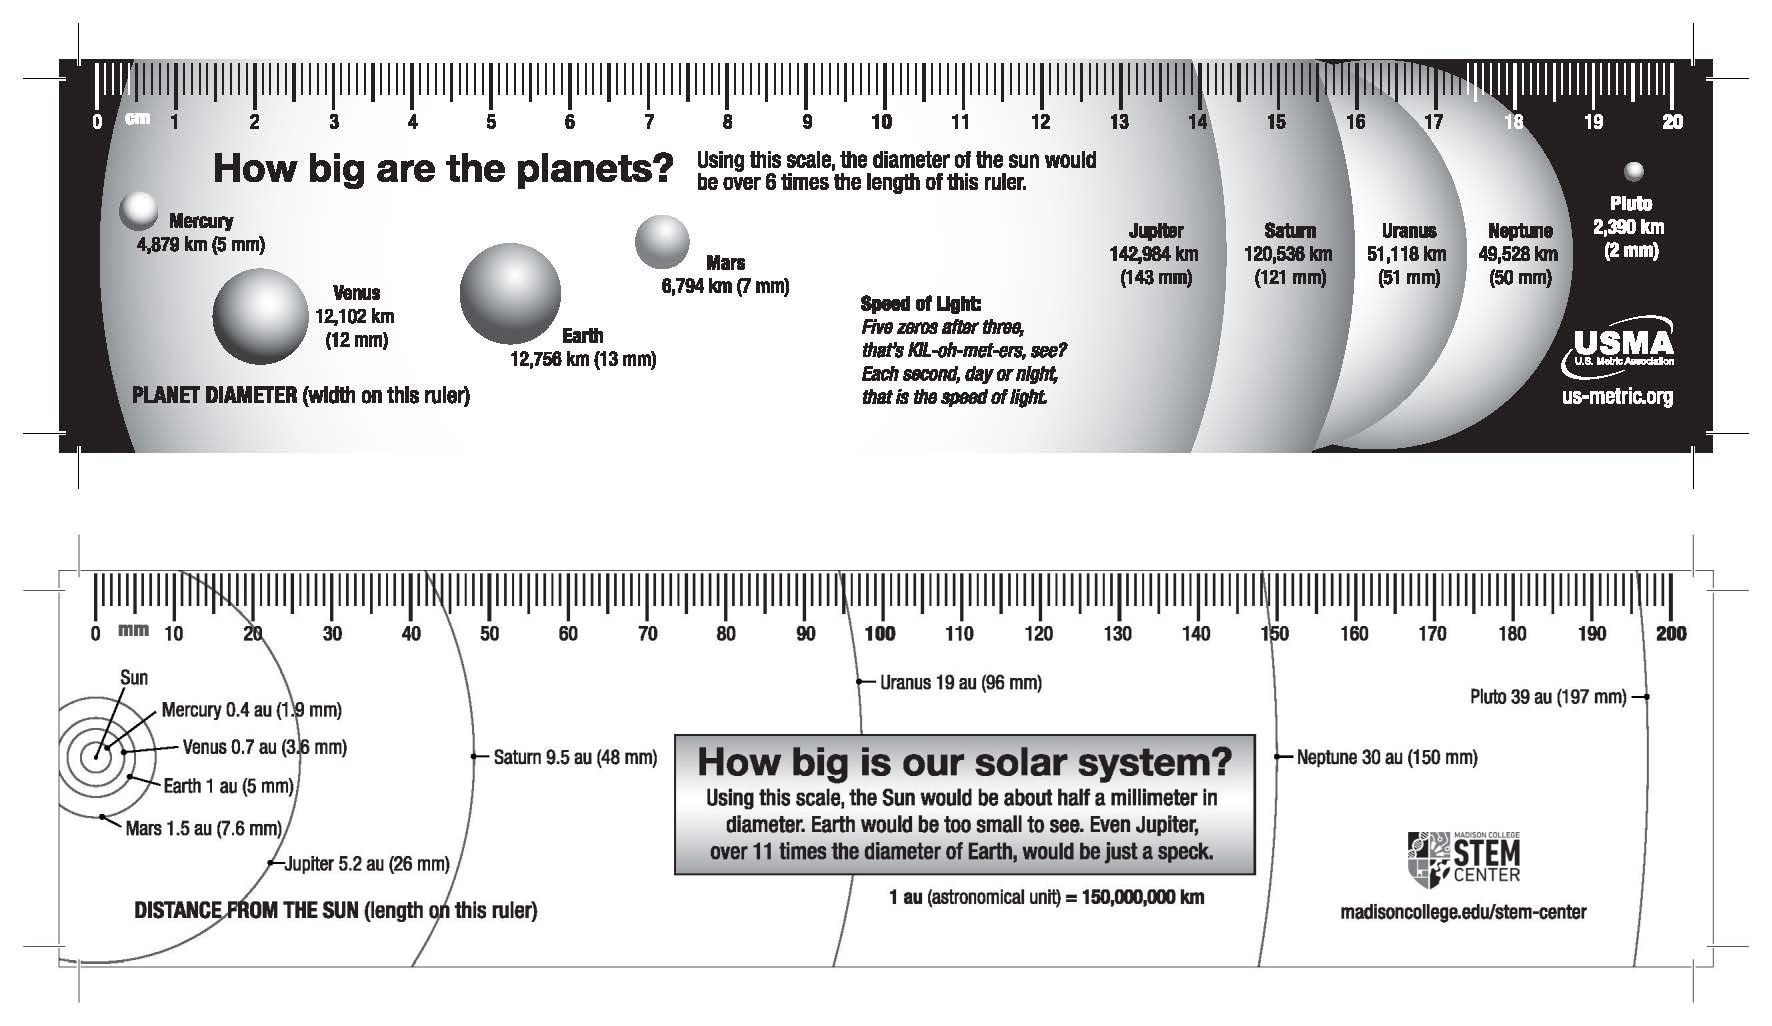 hight resolution of marked in centimeters on one side and in millimeters on the other side features how big are the planets on one side and how big is our solar system